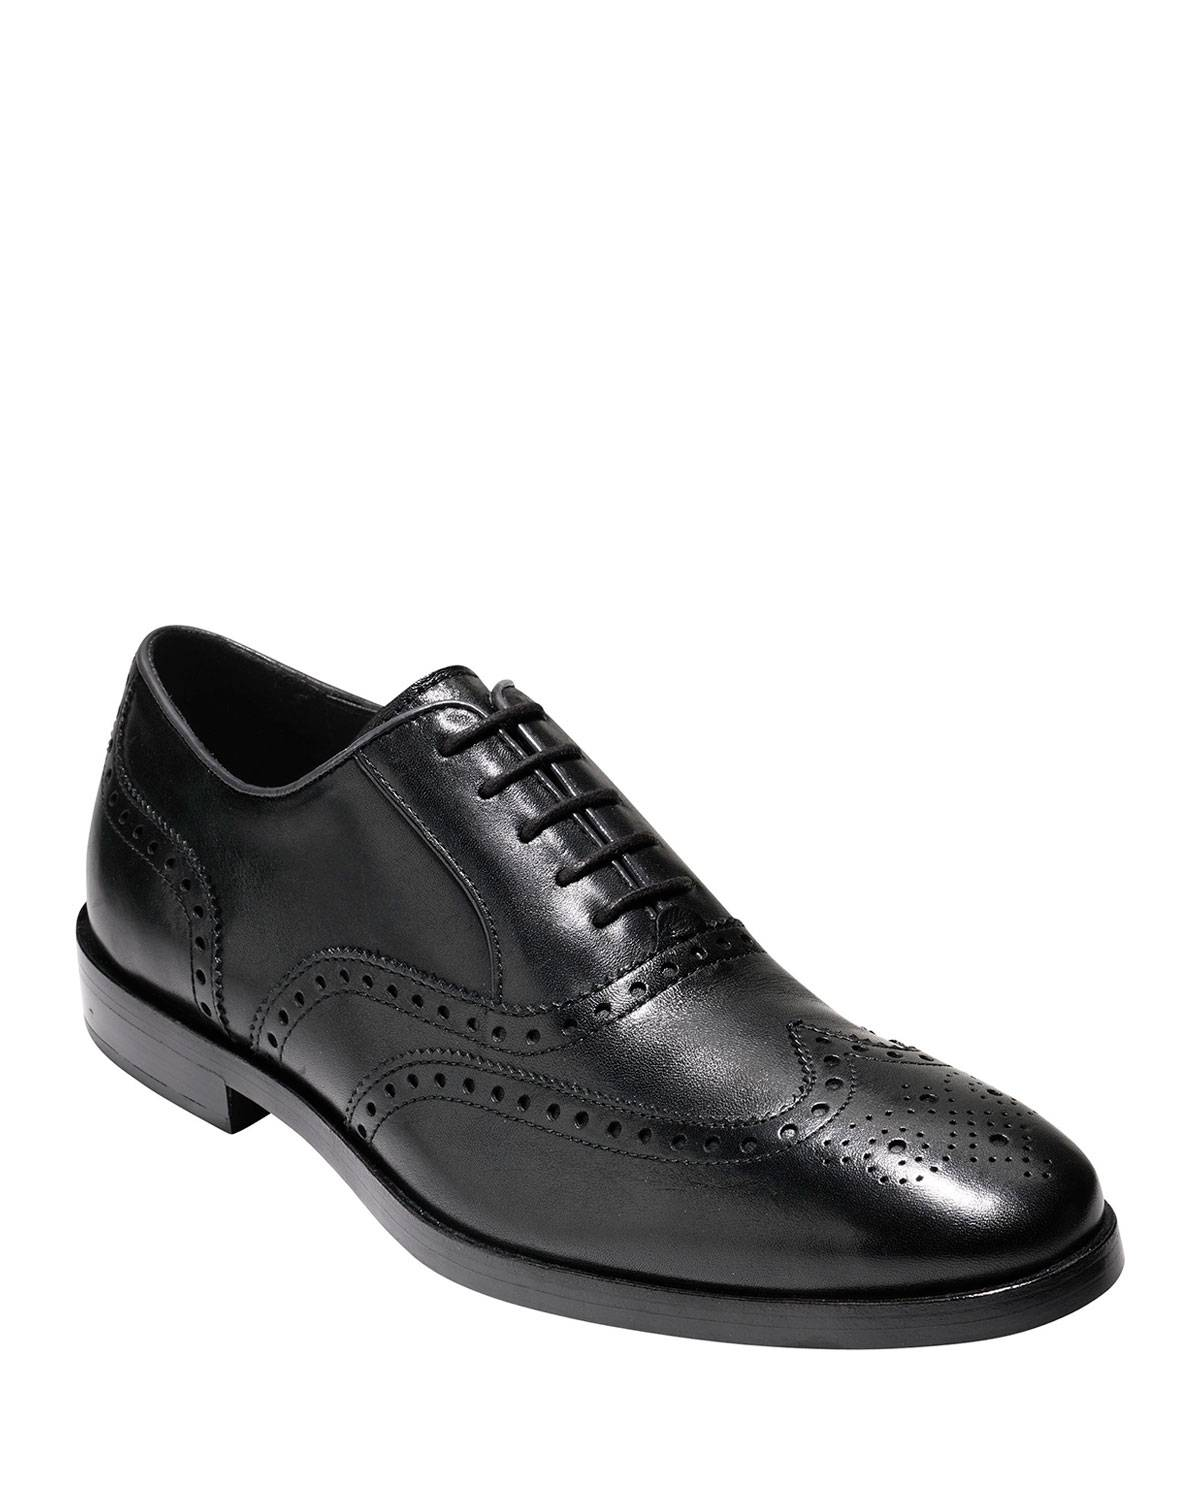 Cole Haan Hamilton Grand Wing-Tip Oxford, Black - Size: 7.5D